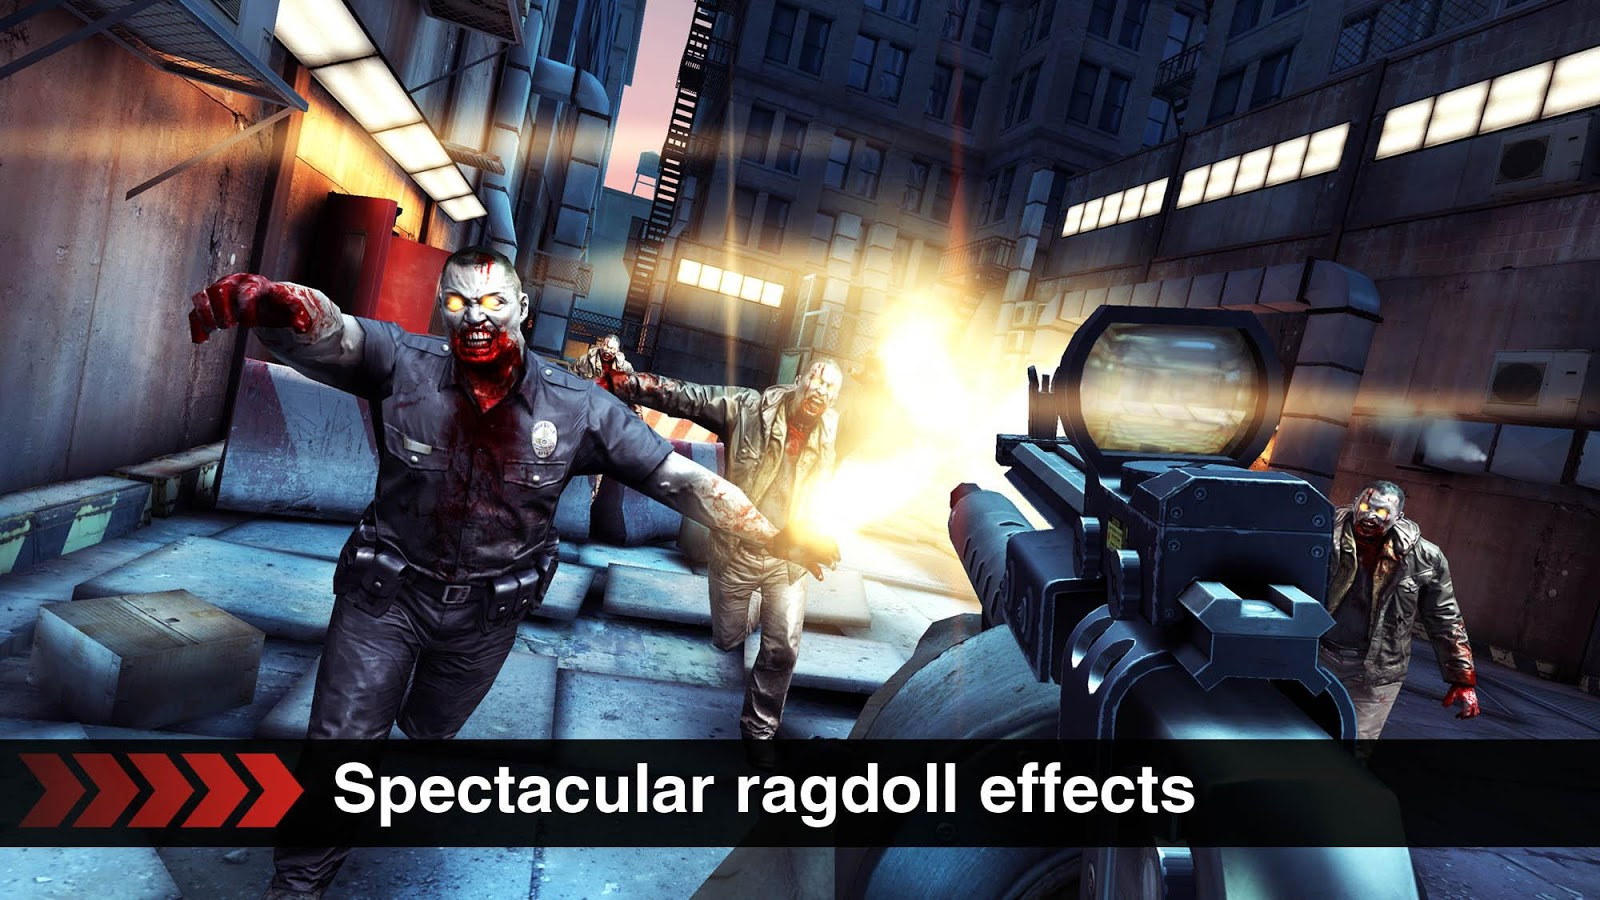 Dead Trigger v1.8.2 Apk + Data Unlimited Gold + Unlimited Money Mod Download